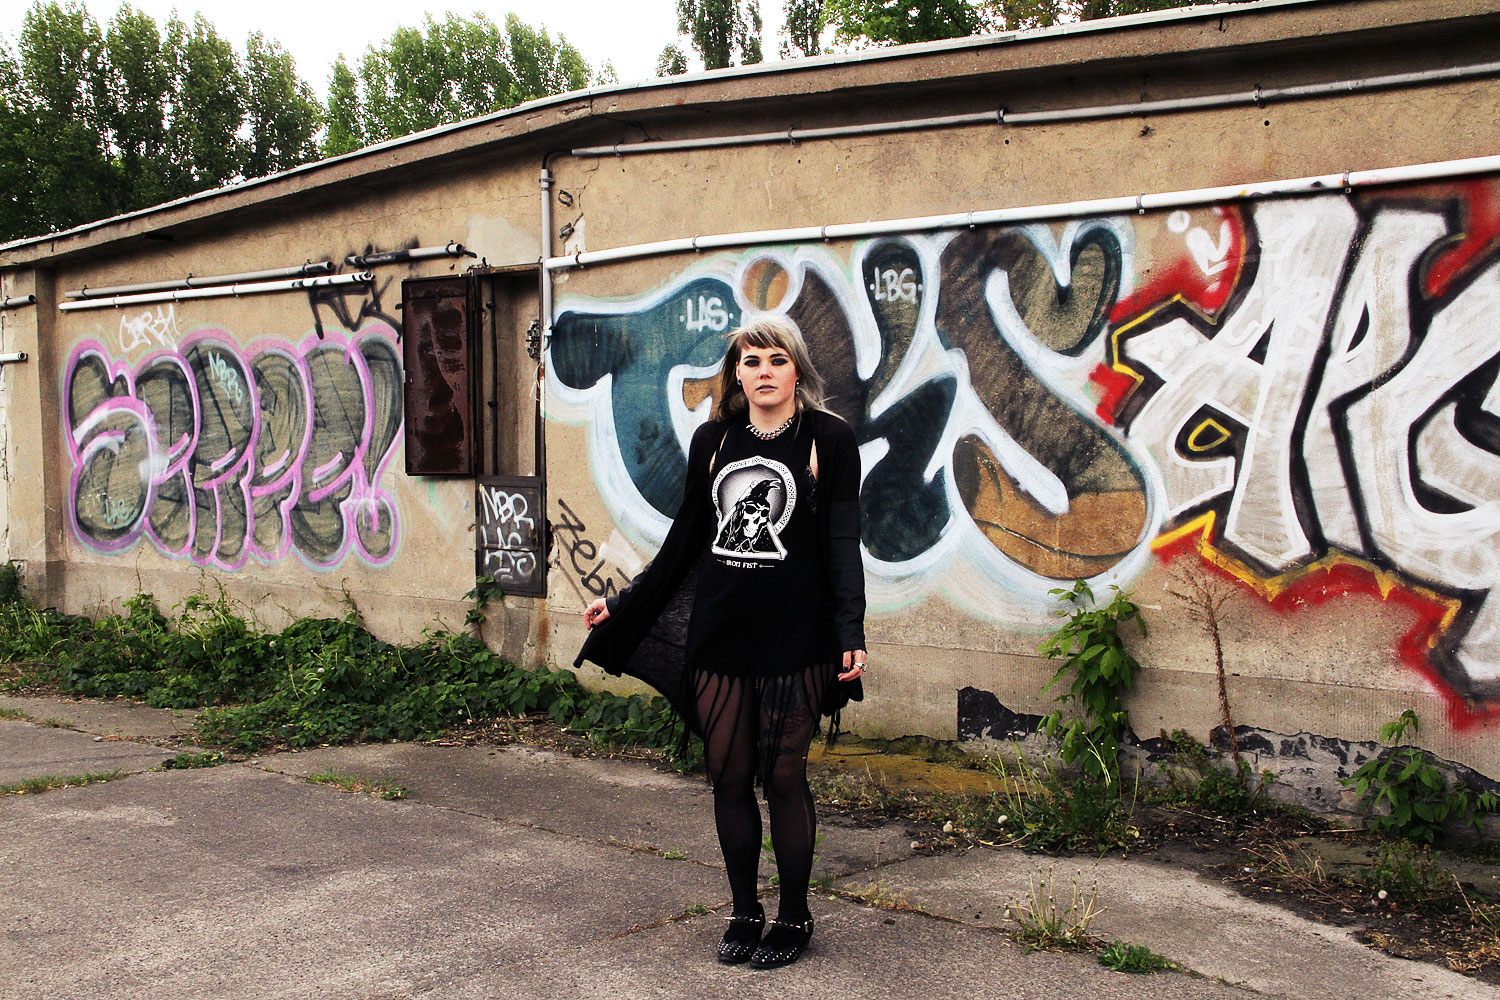 alternative, alternative fashion, alternative girl, alternative mode, altgirl, berlin, berlin fashion, berlin fashion blogger, berlin mode, berlin streetstyle, blogger, fashion blogger, girls with piercings, girls with tattoos, grunge, grunge fashion, grunge mode, mode, Punk, punk fashion, punk mode, punkgirl, scenehair, snakebites, split hair, splithair, tattoo model, fransen, krähe, iron fist, nieten, spikes, kunstleder, transparenz, leichter strick, asos, schuhe, cardigan, kleid, sommer, la splash, lime crime, lime crime venus 2, lime crime, make up